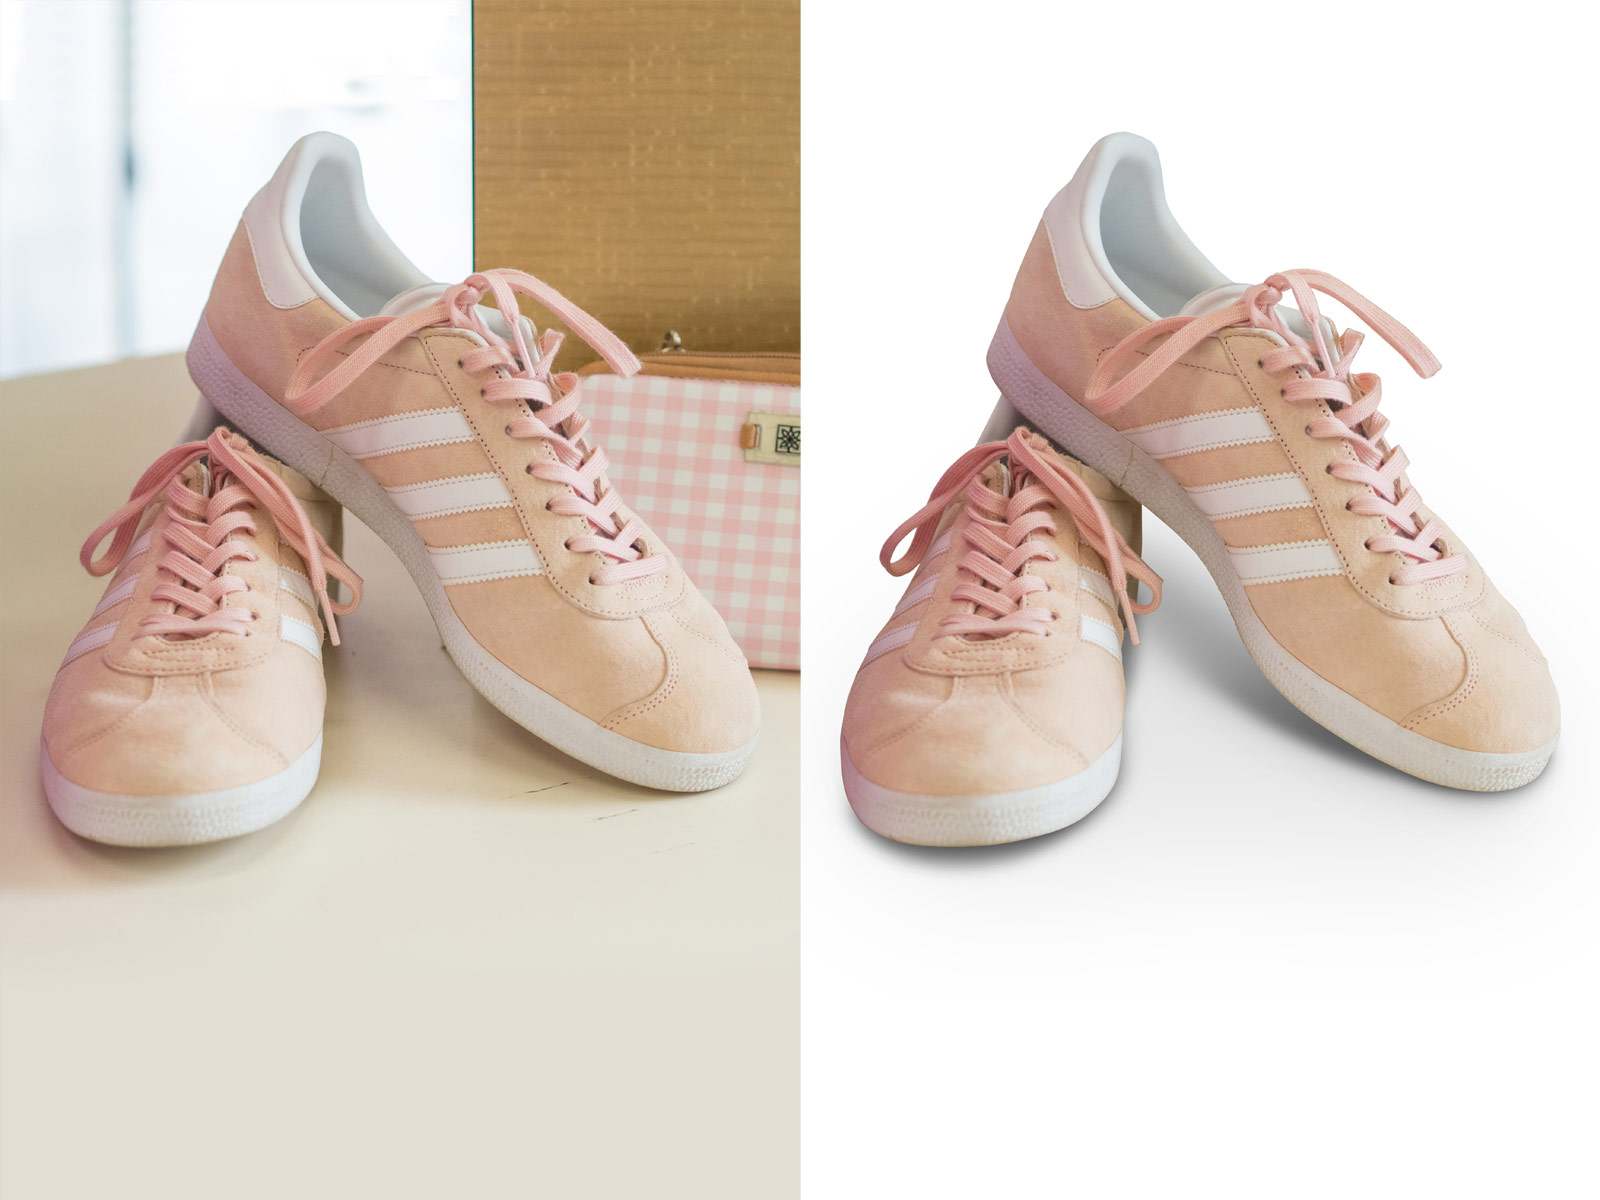 Natural Shadow service by Alpha Clipping Path